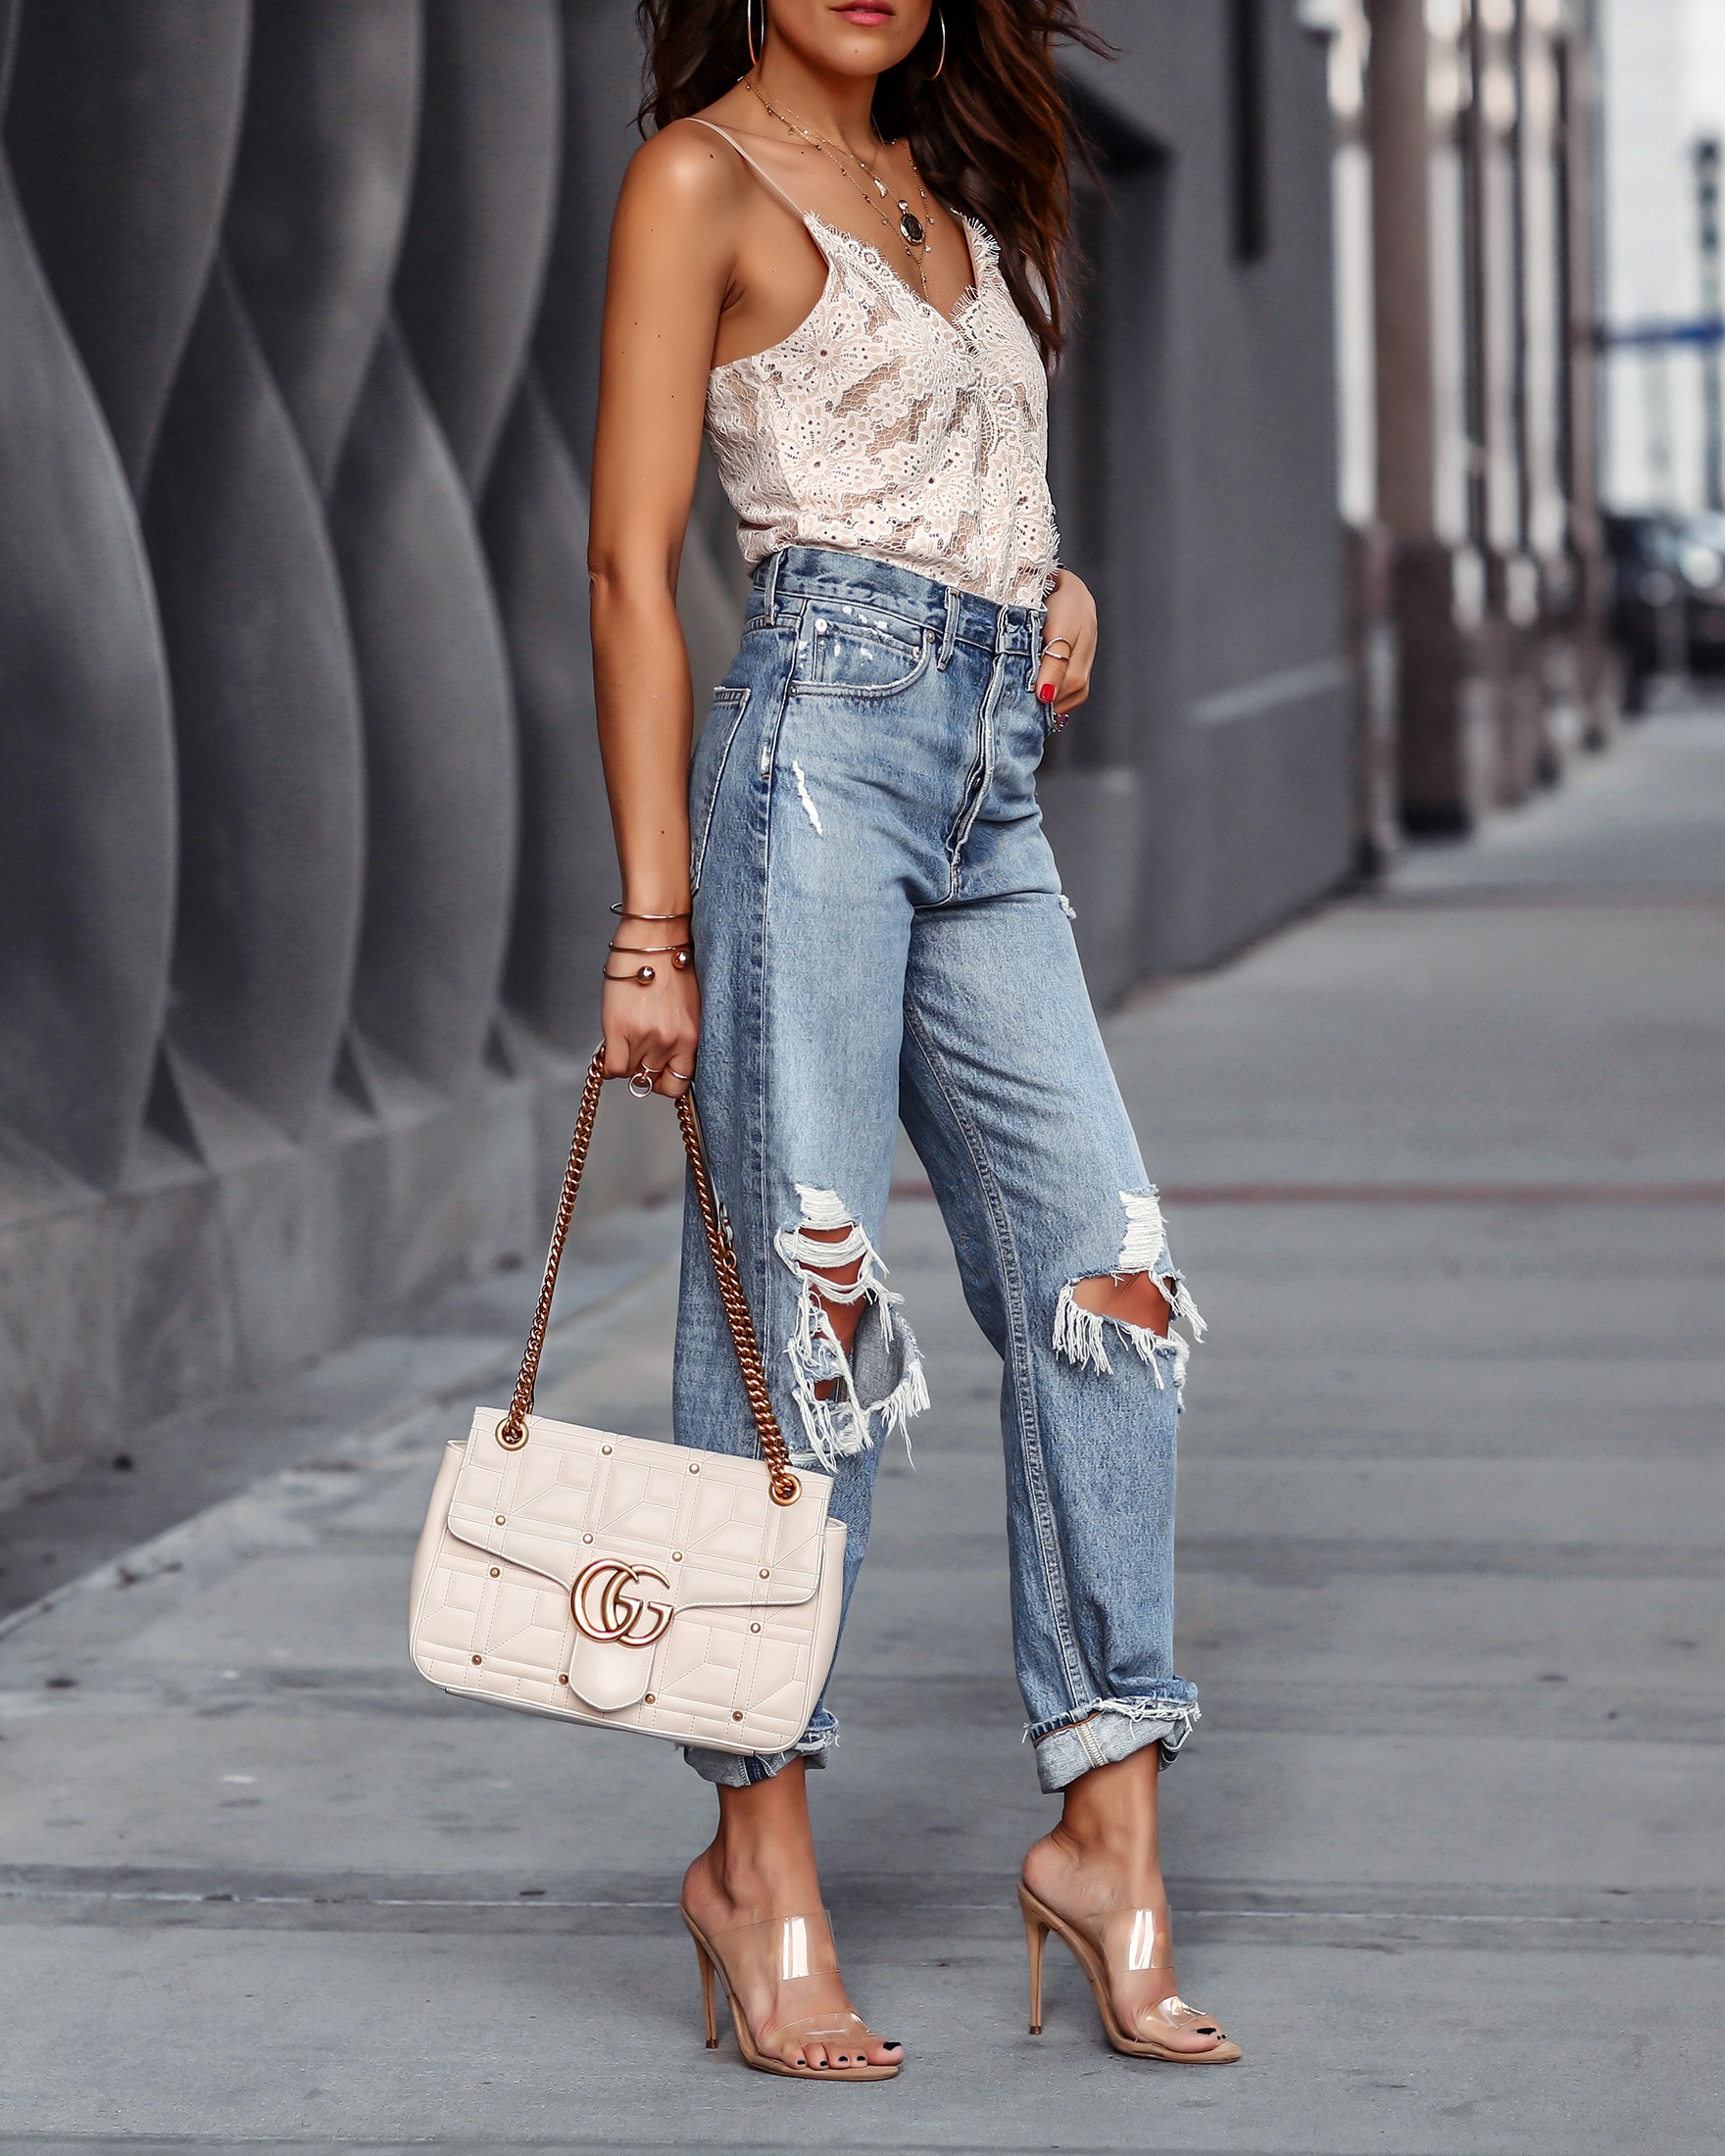 Woman in Steve Madden Clear Mules Ripped jeans White Gucci Marmont Bag